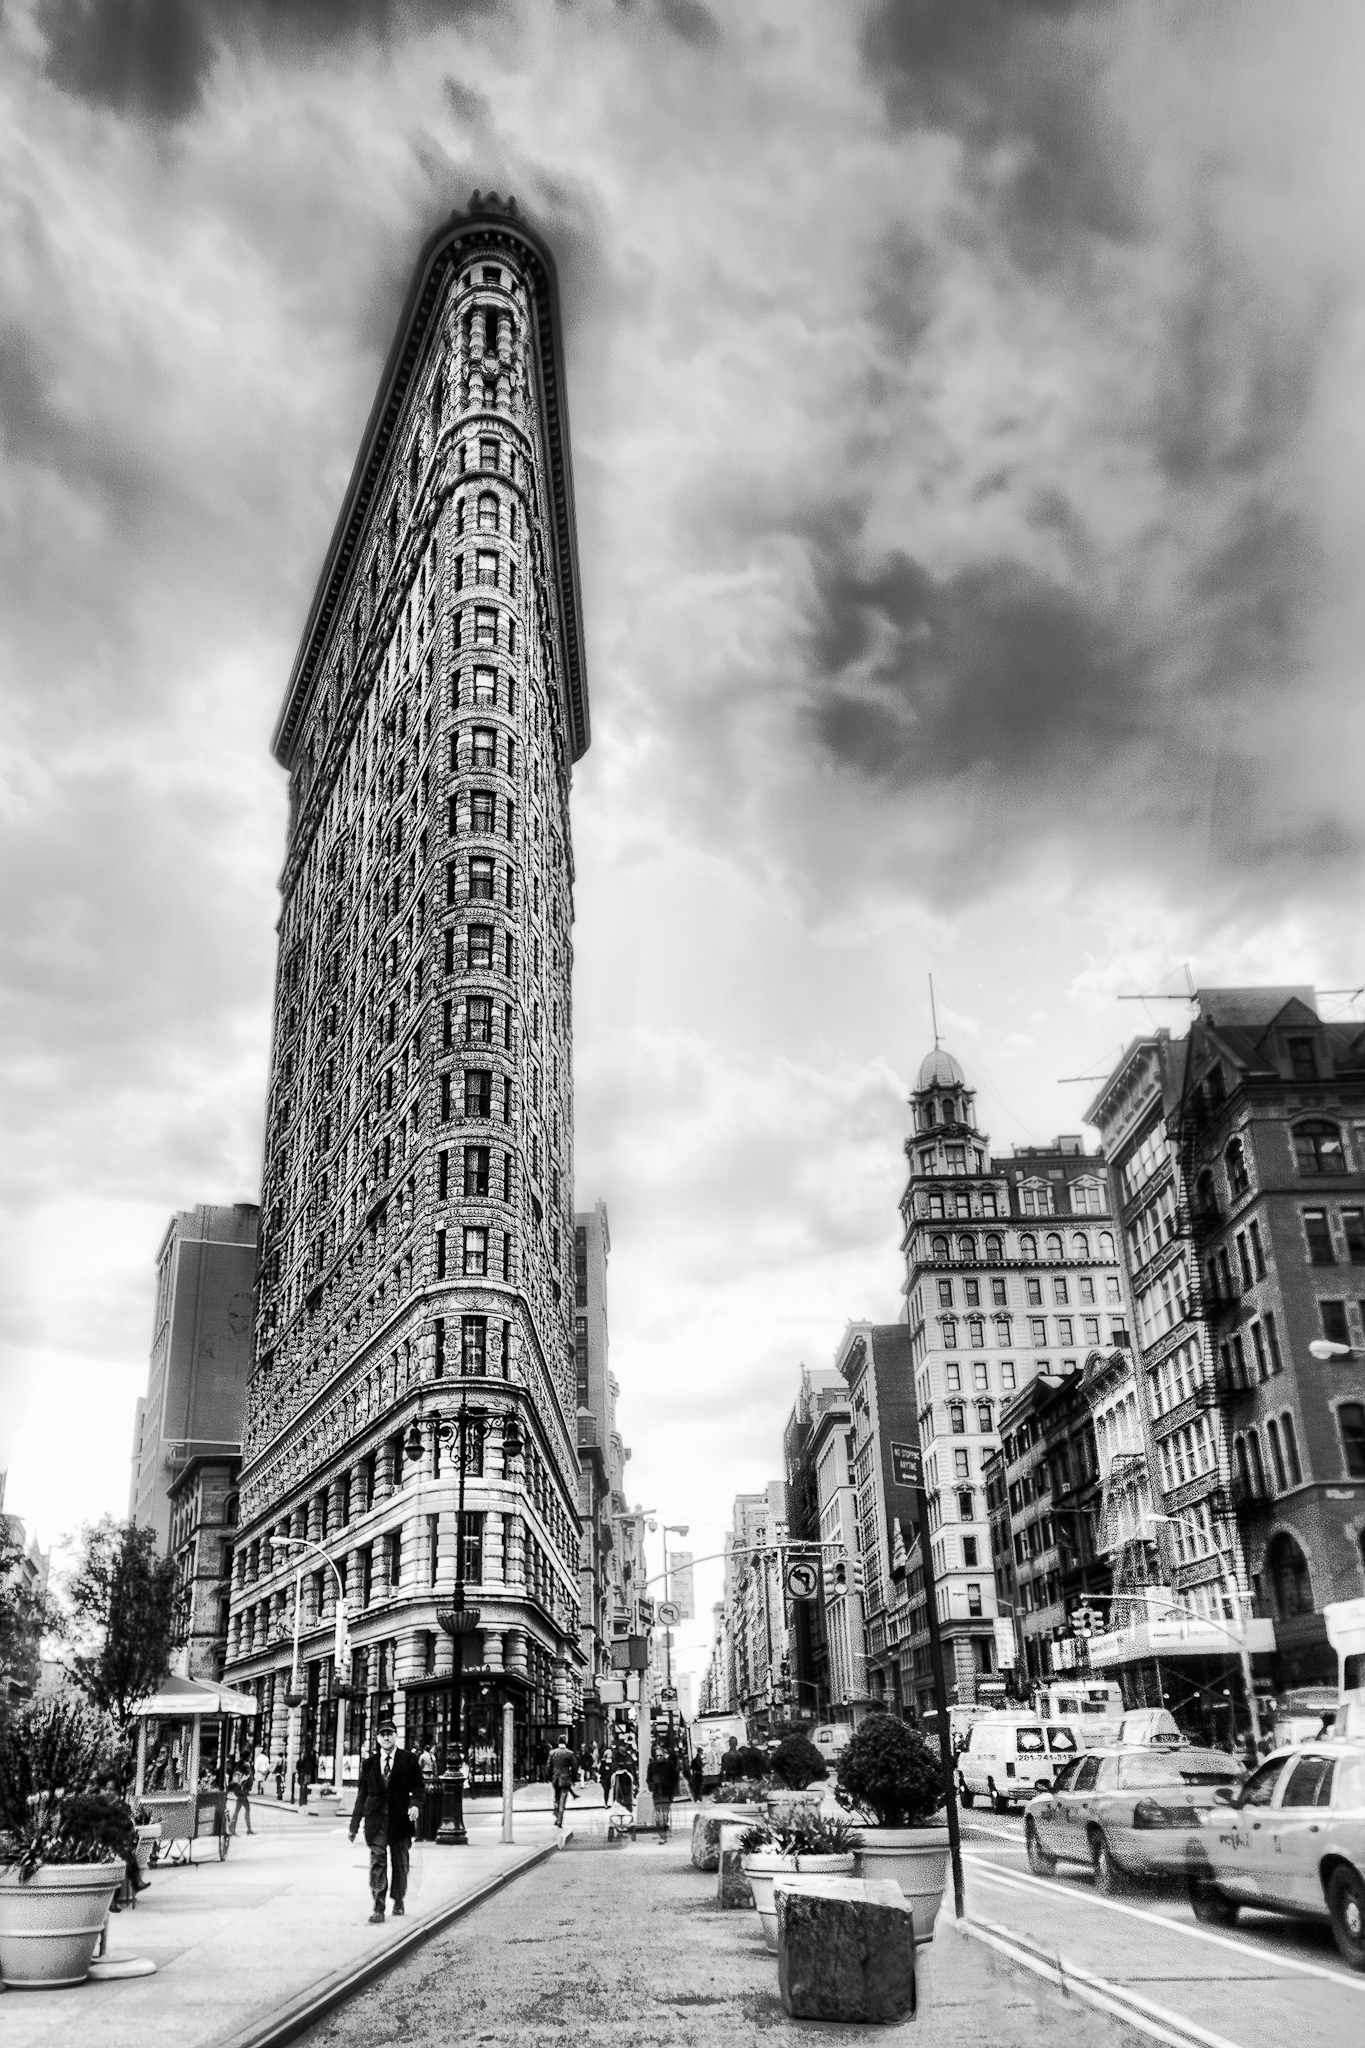 What City Is The Flat Iron Building In